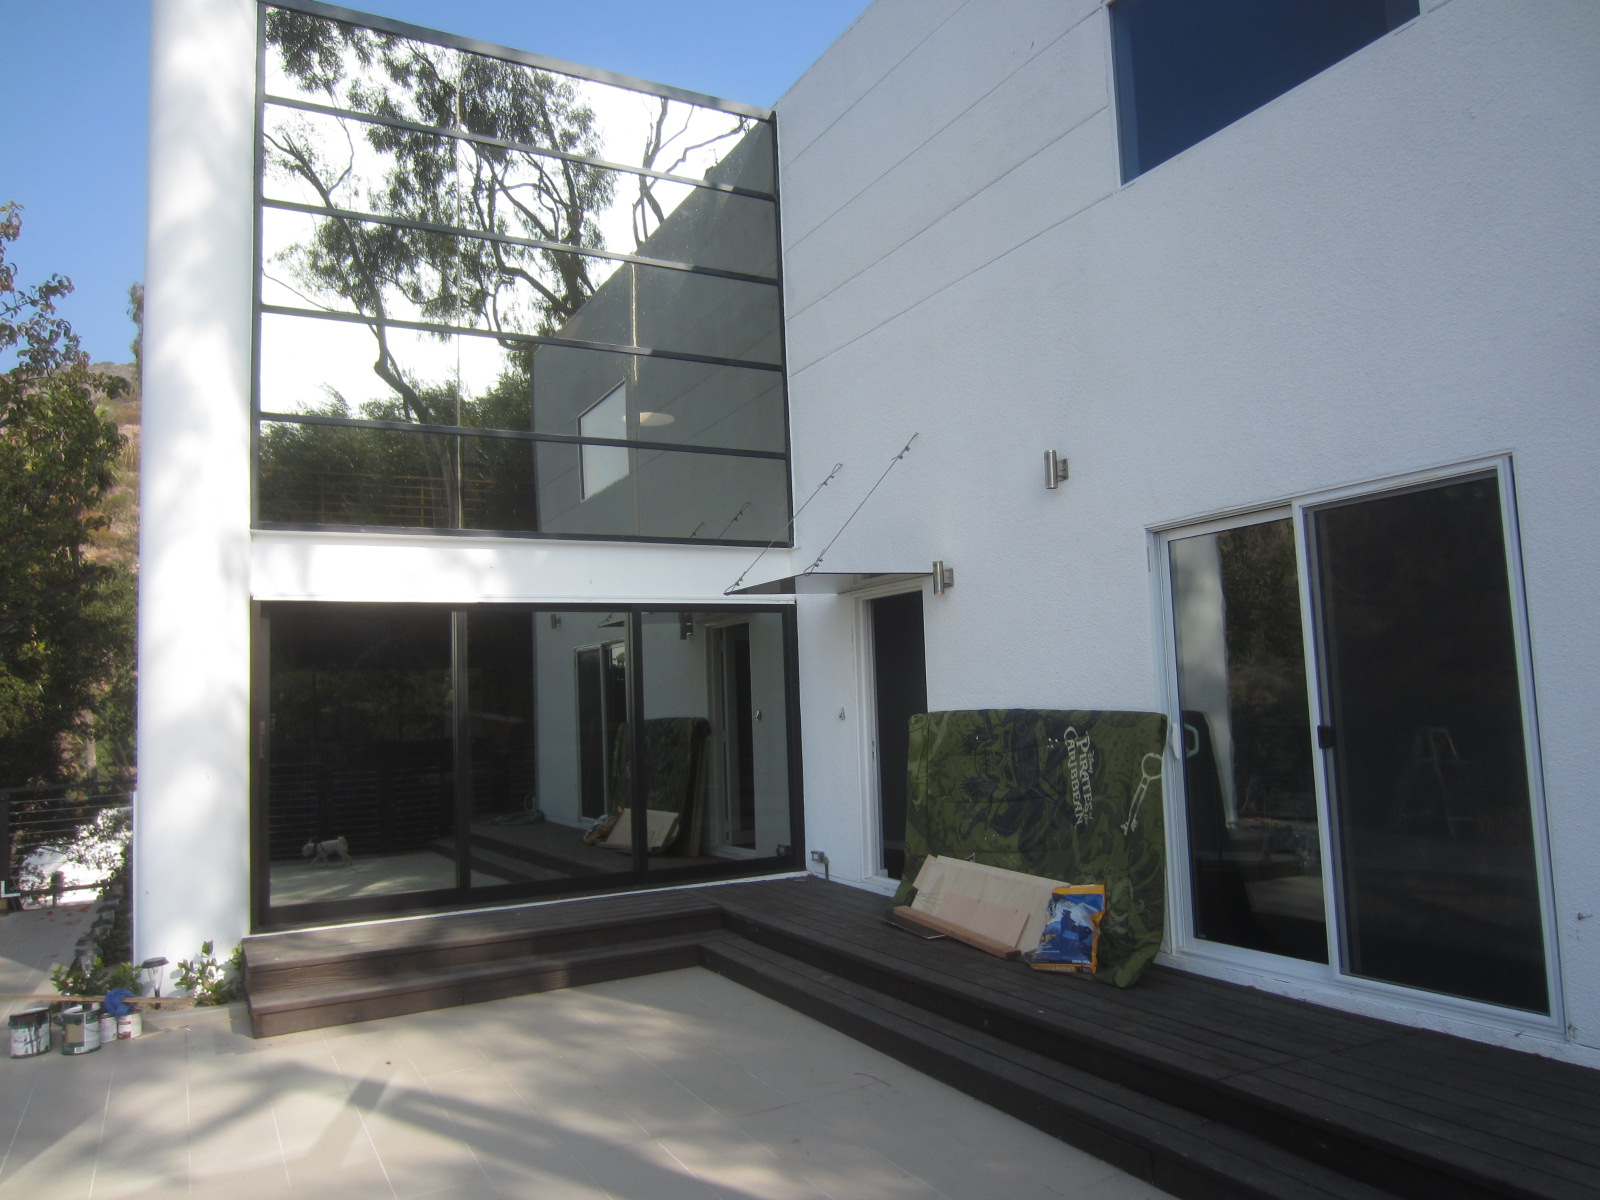 Ed niles architect 1982 malibu ca los angeles modern - Maison contemporaine malibu niles architecte ...